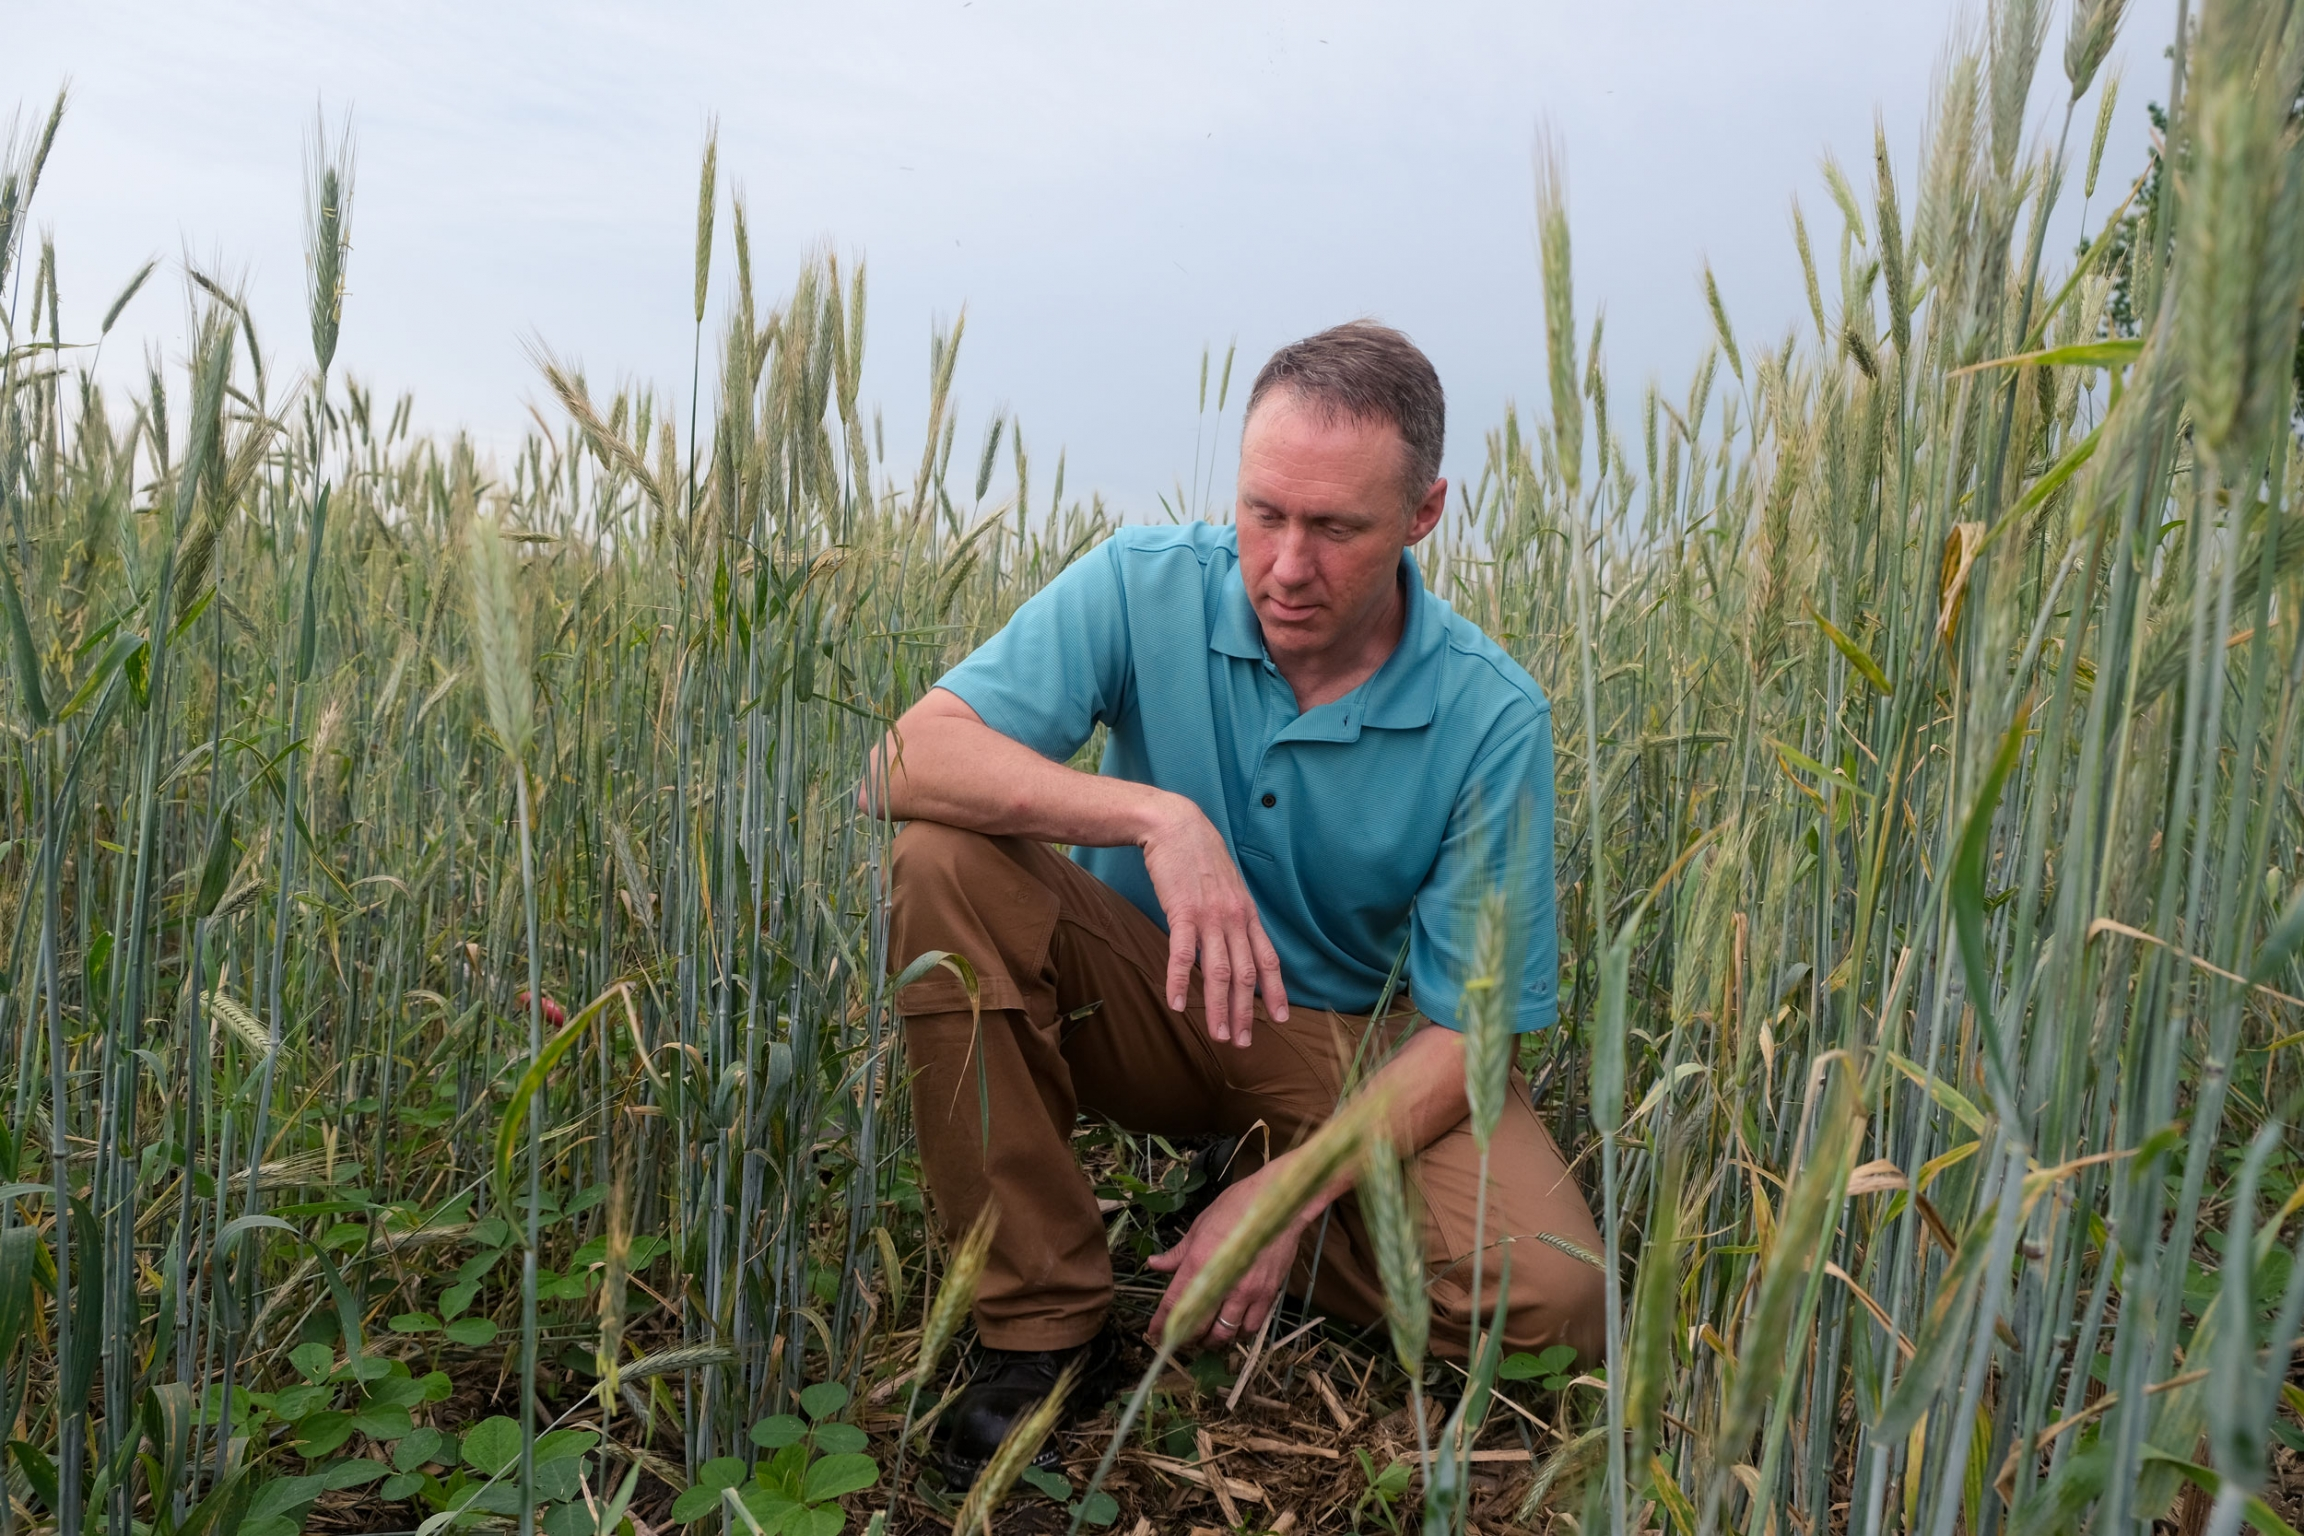 A man is shown kneeling in a wheat field and wearing a blue shirt.